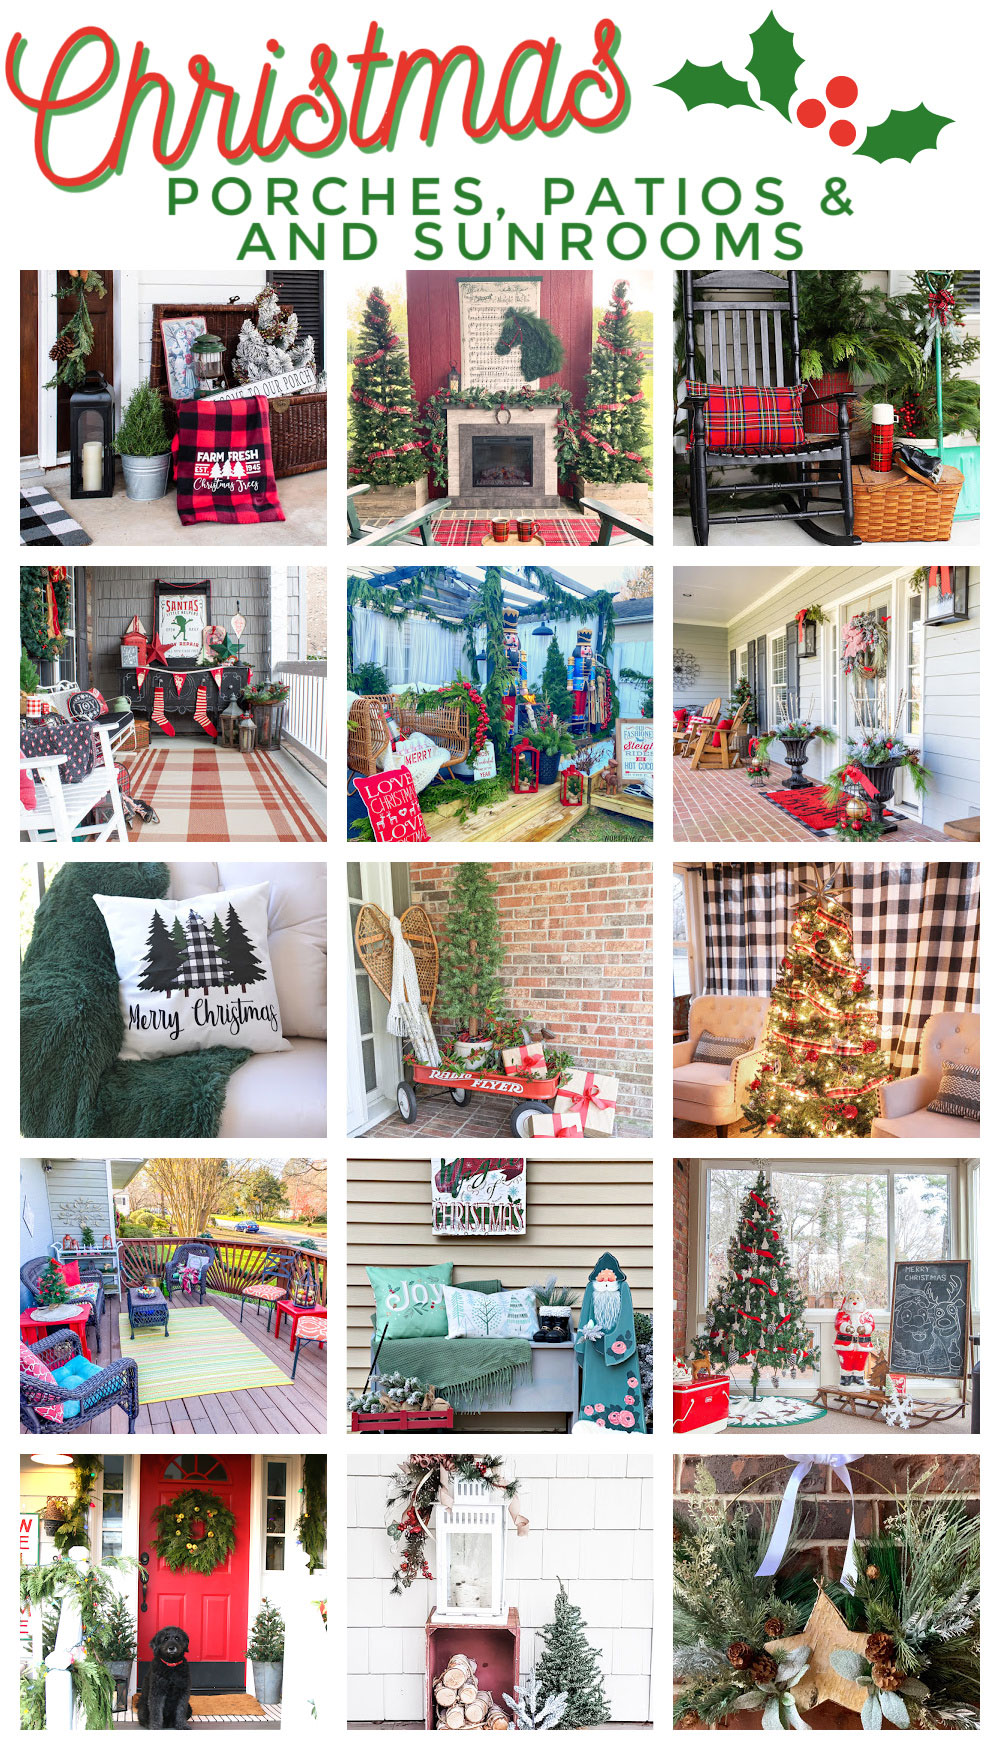 a collage of many porches decorated for Christmas